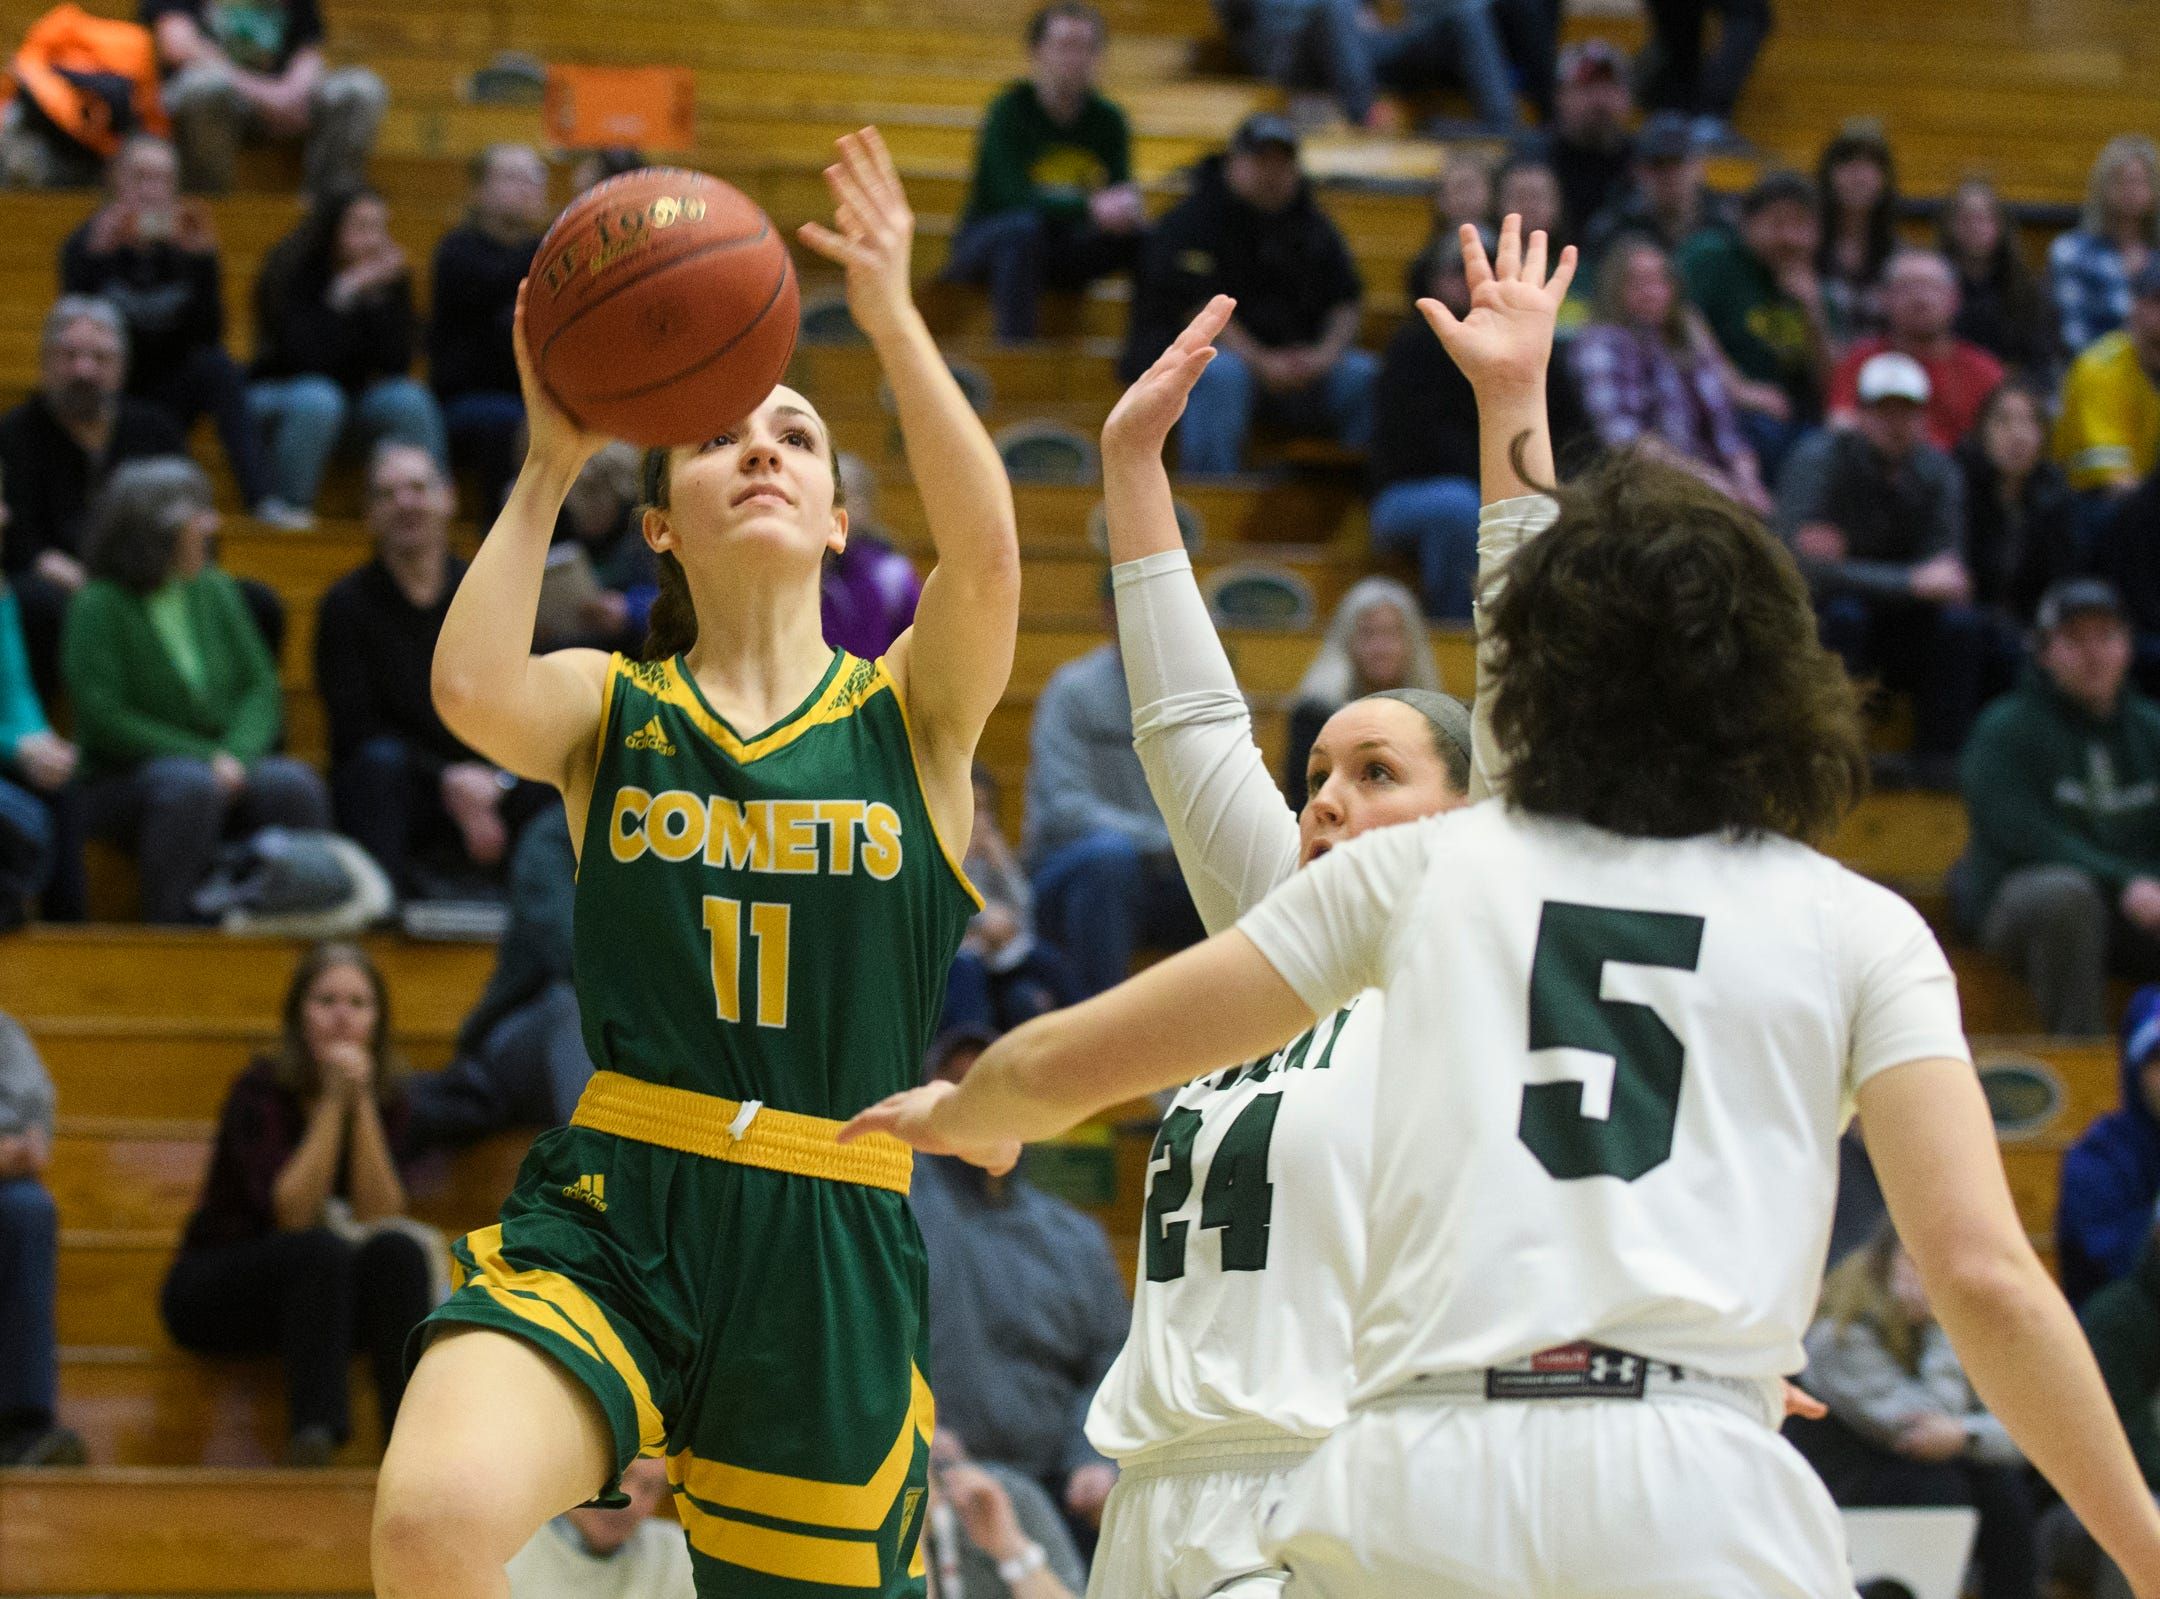 BFA's Elena Clark (11) shoots the ball during the girls semifinal basketball game between the BFA St. Albans Comets and the St. Johnsbury Hilltoppers at Patrick Gym on Wednesday night March 6, 2019 in Burlington, Vermont.